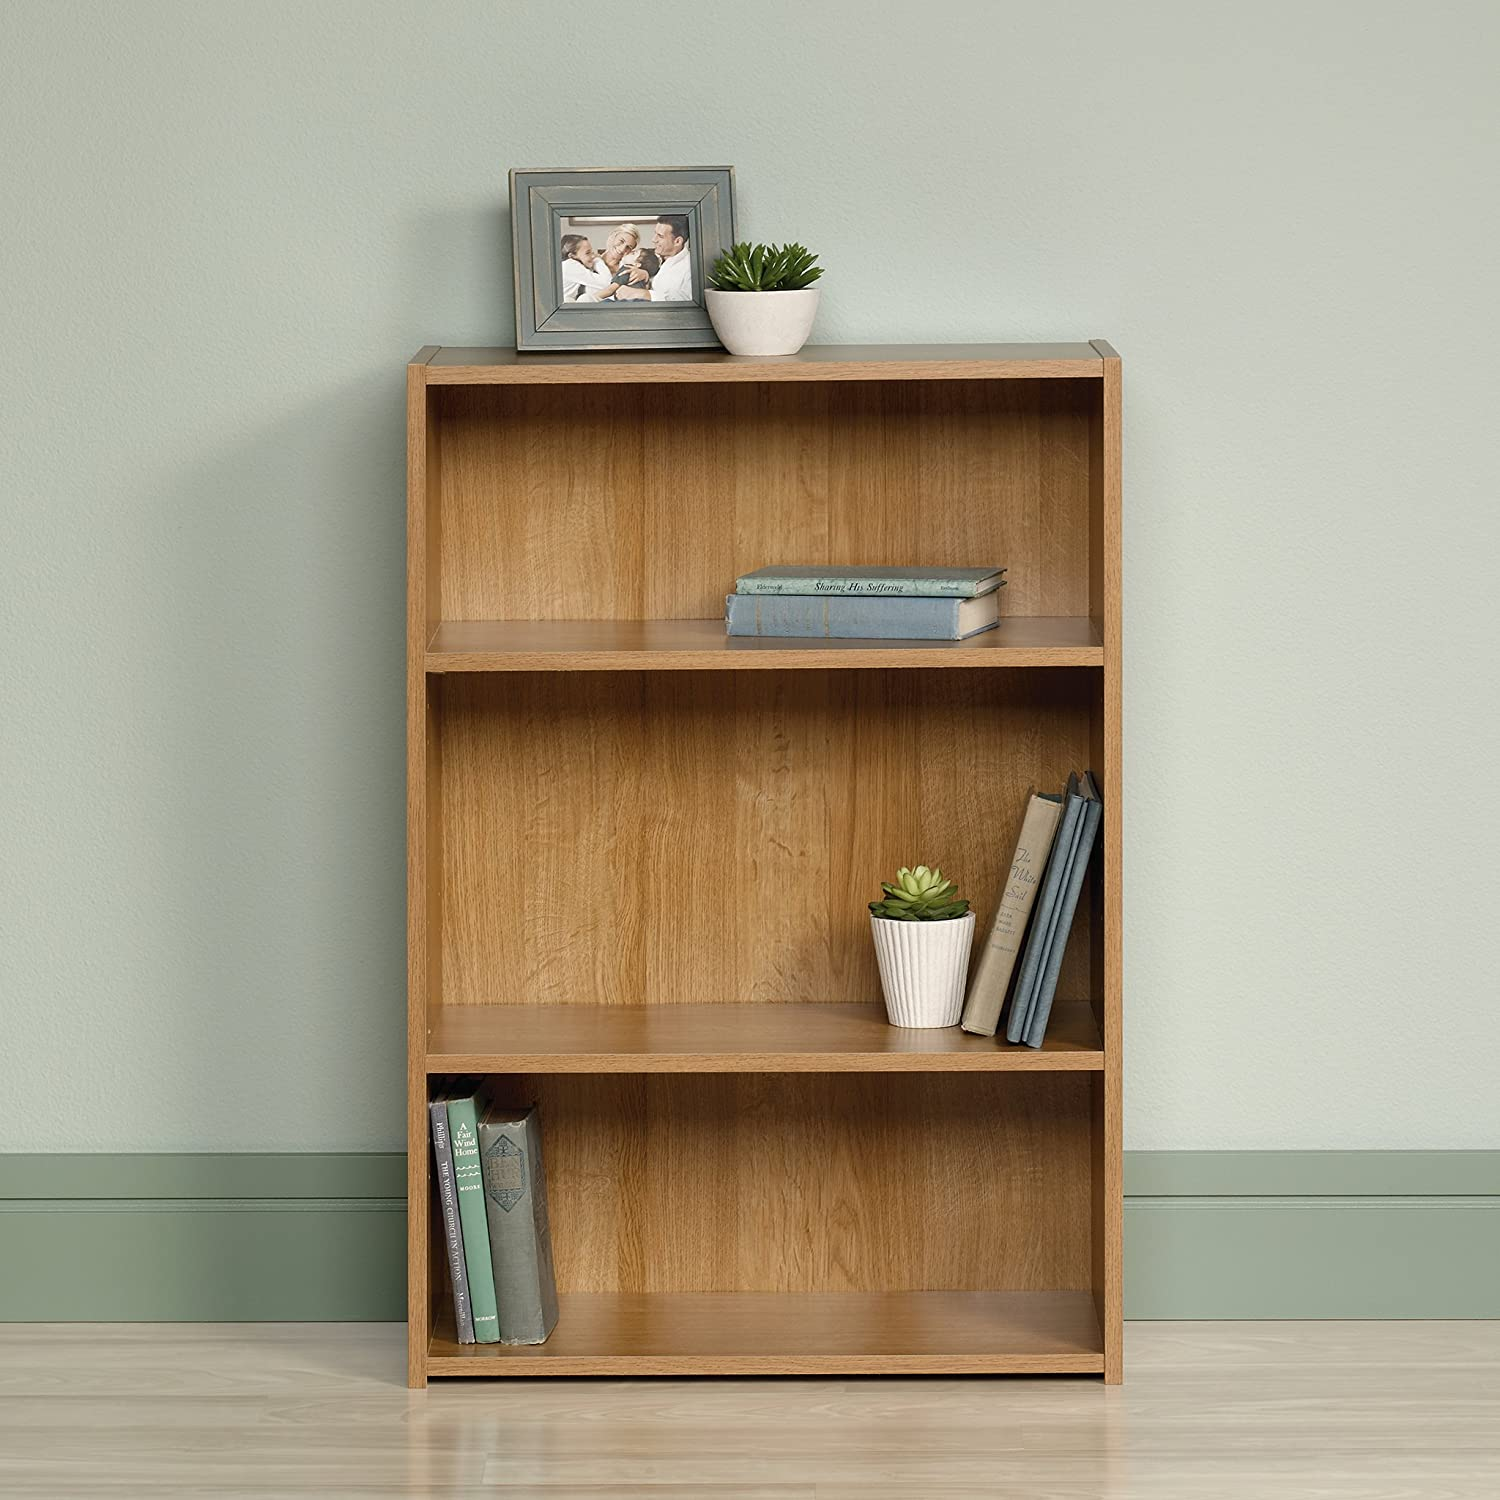 bookcases wide office small with bookshelves unit furniture buy doors book skinny shelf inch glass bookcase white lowes bookshelf slanted